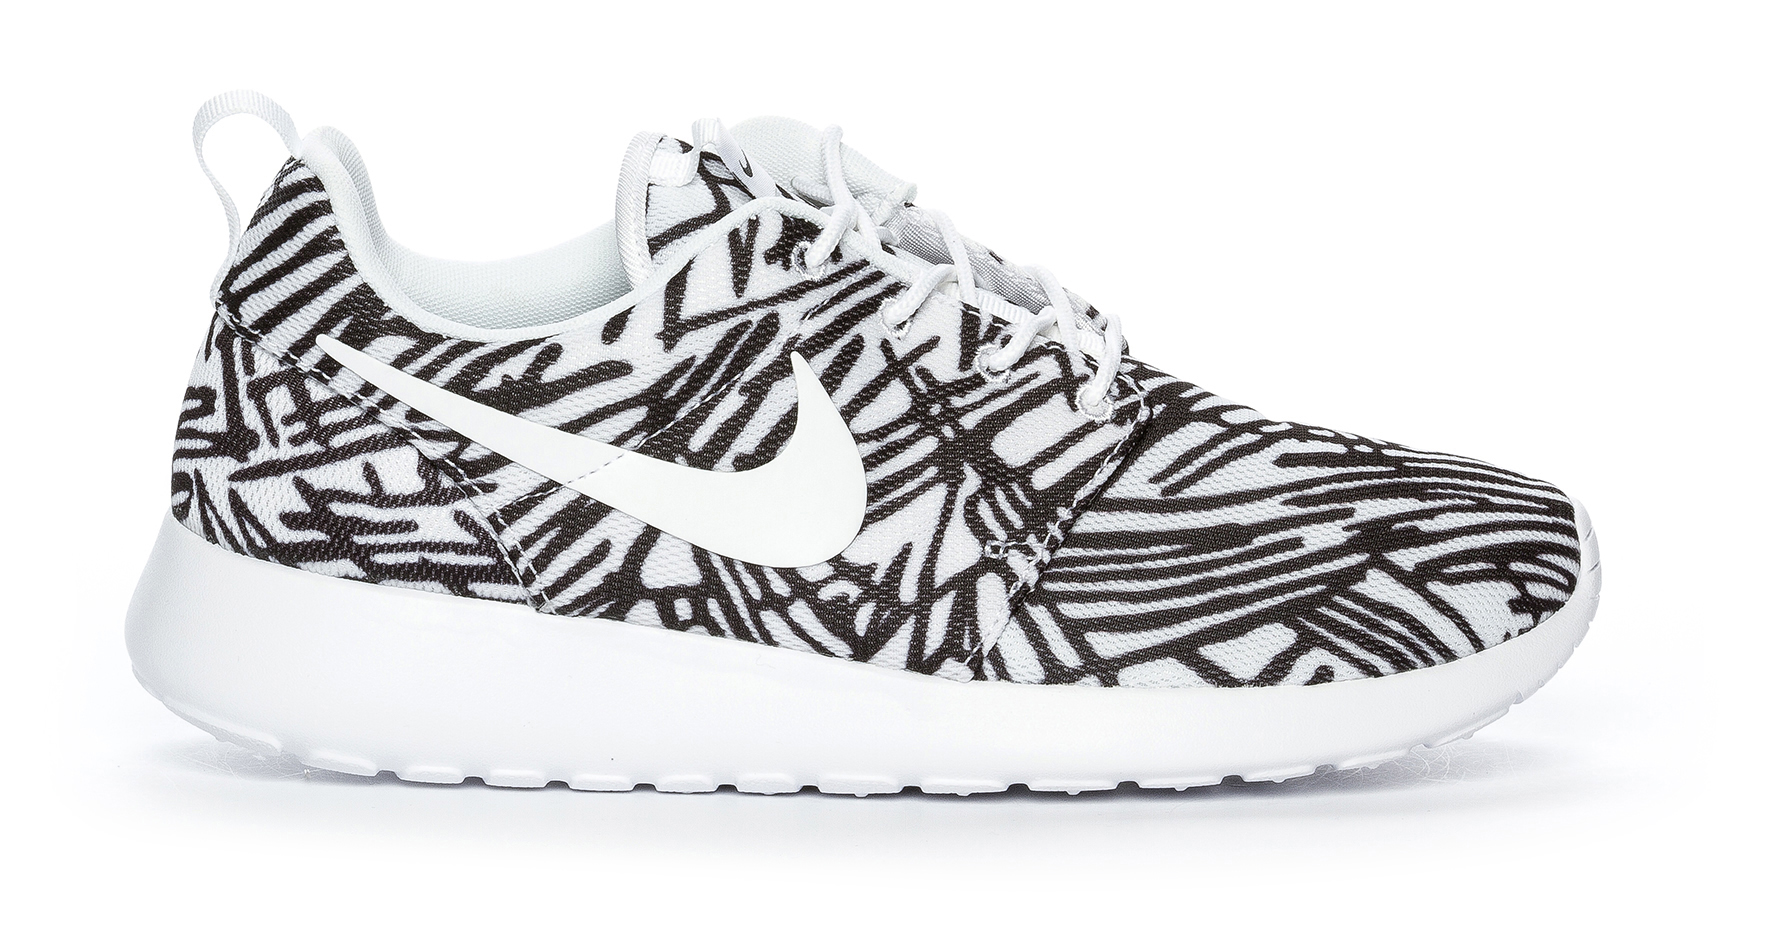 competitive price 4369a 6c7d8 Nike Roshe One Print - Vita 298120 feetfirst.se